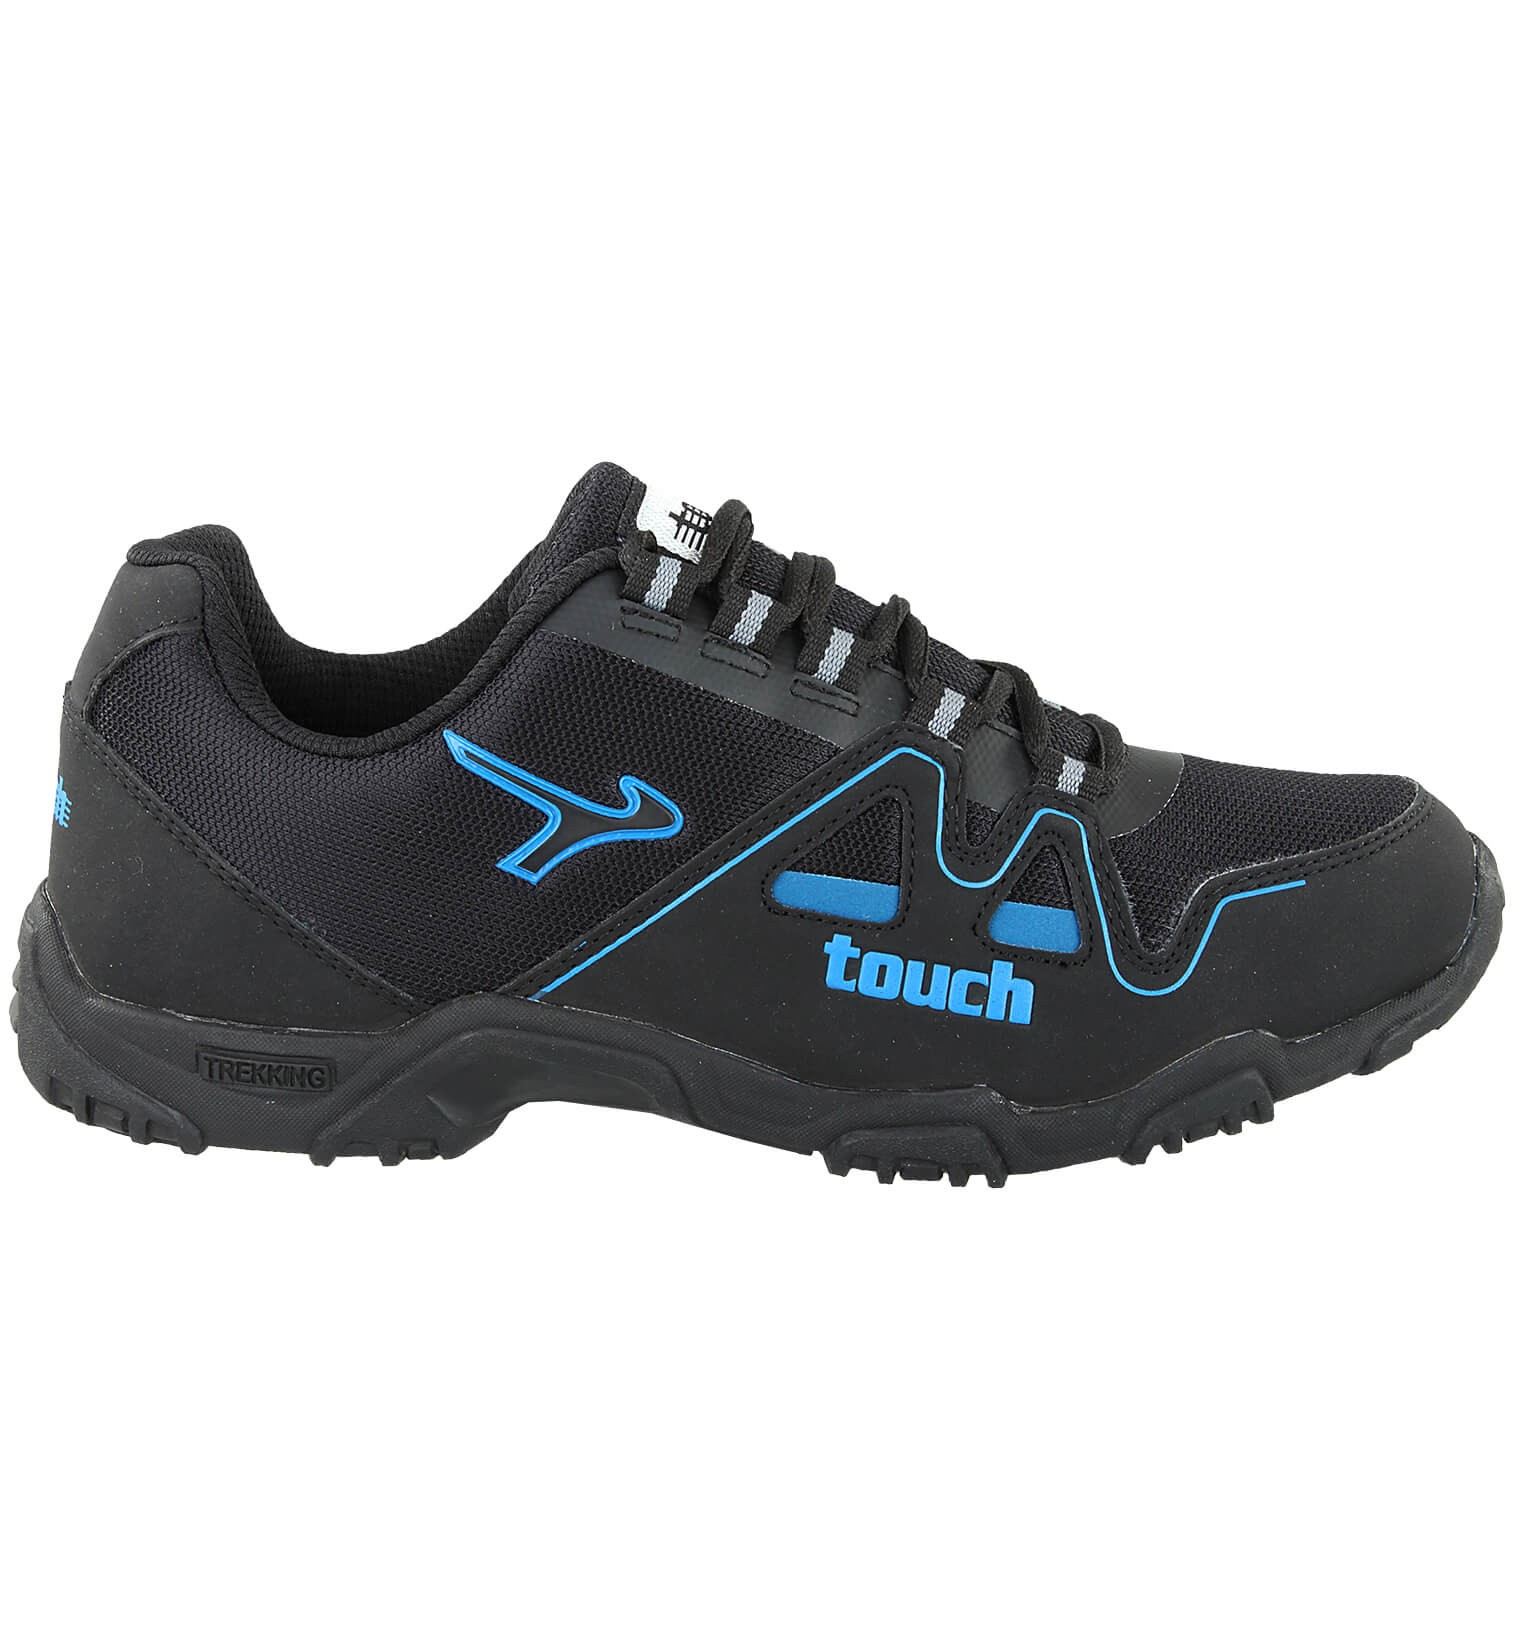 Touch-7052-BLACK/MD/BLUE